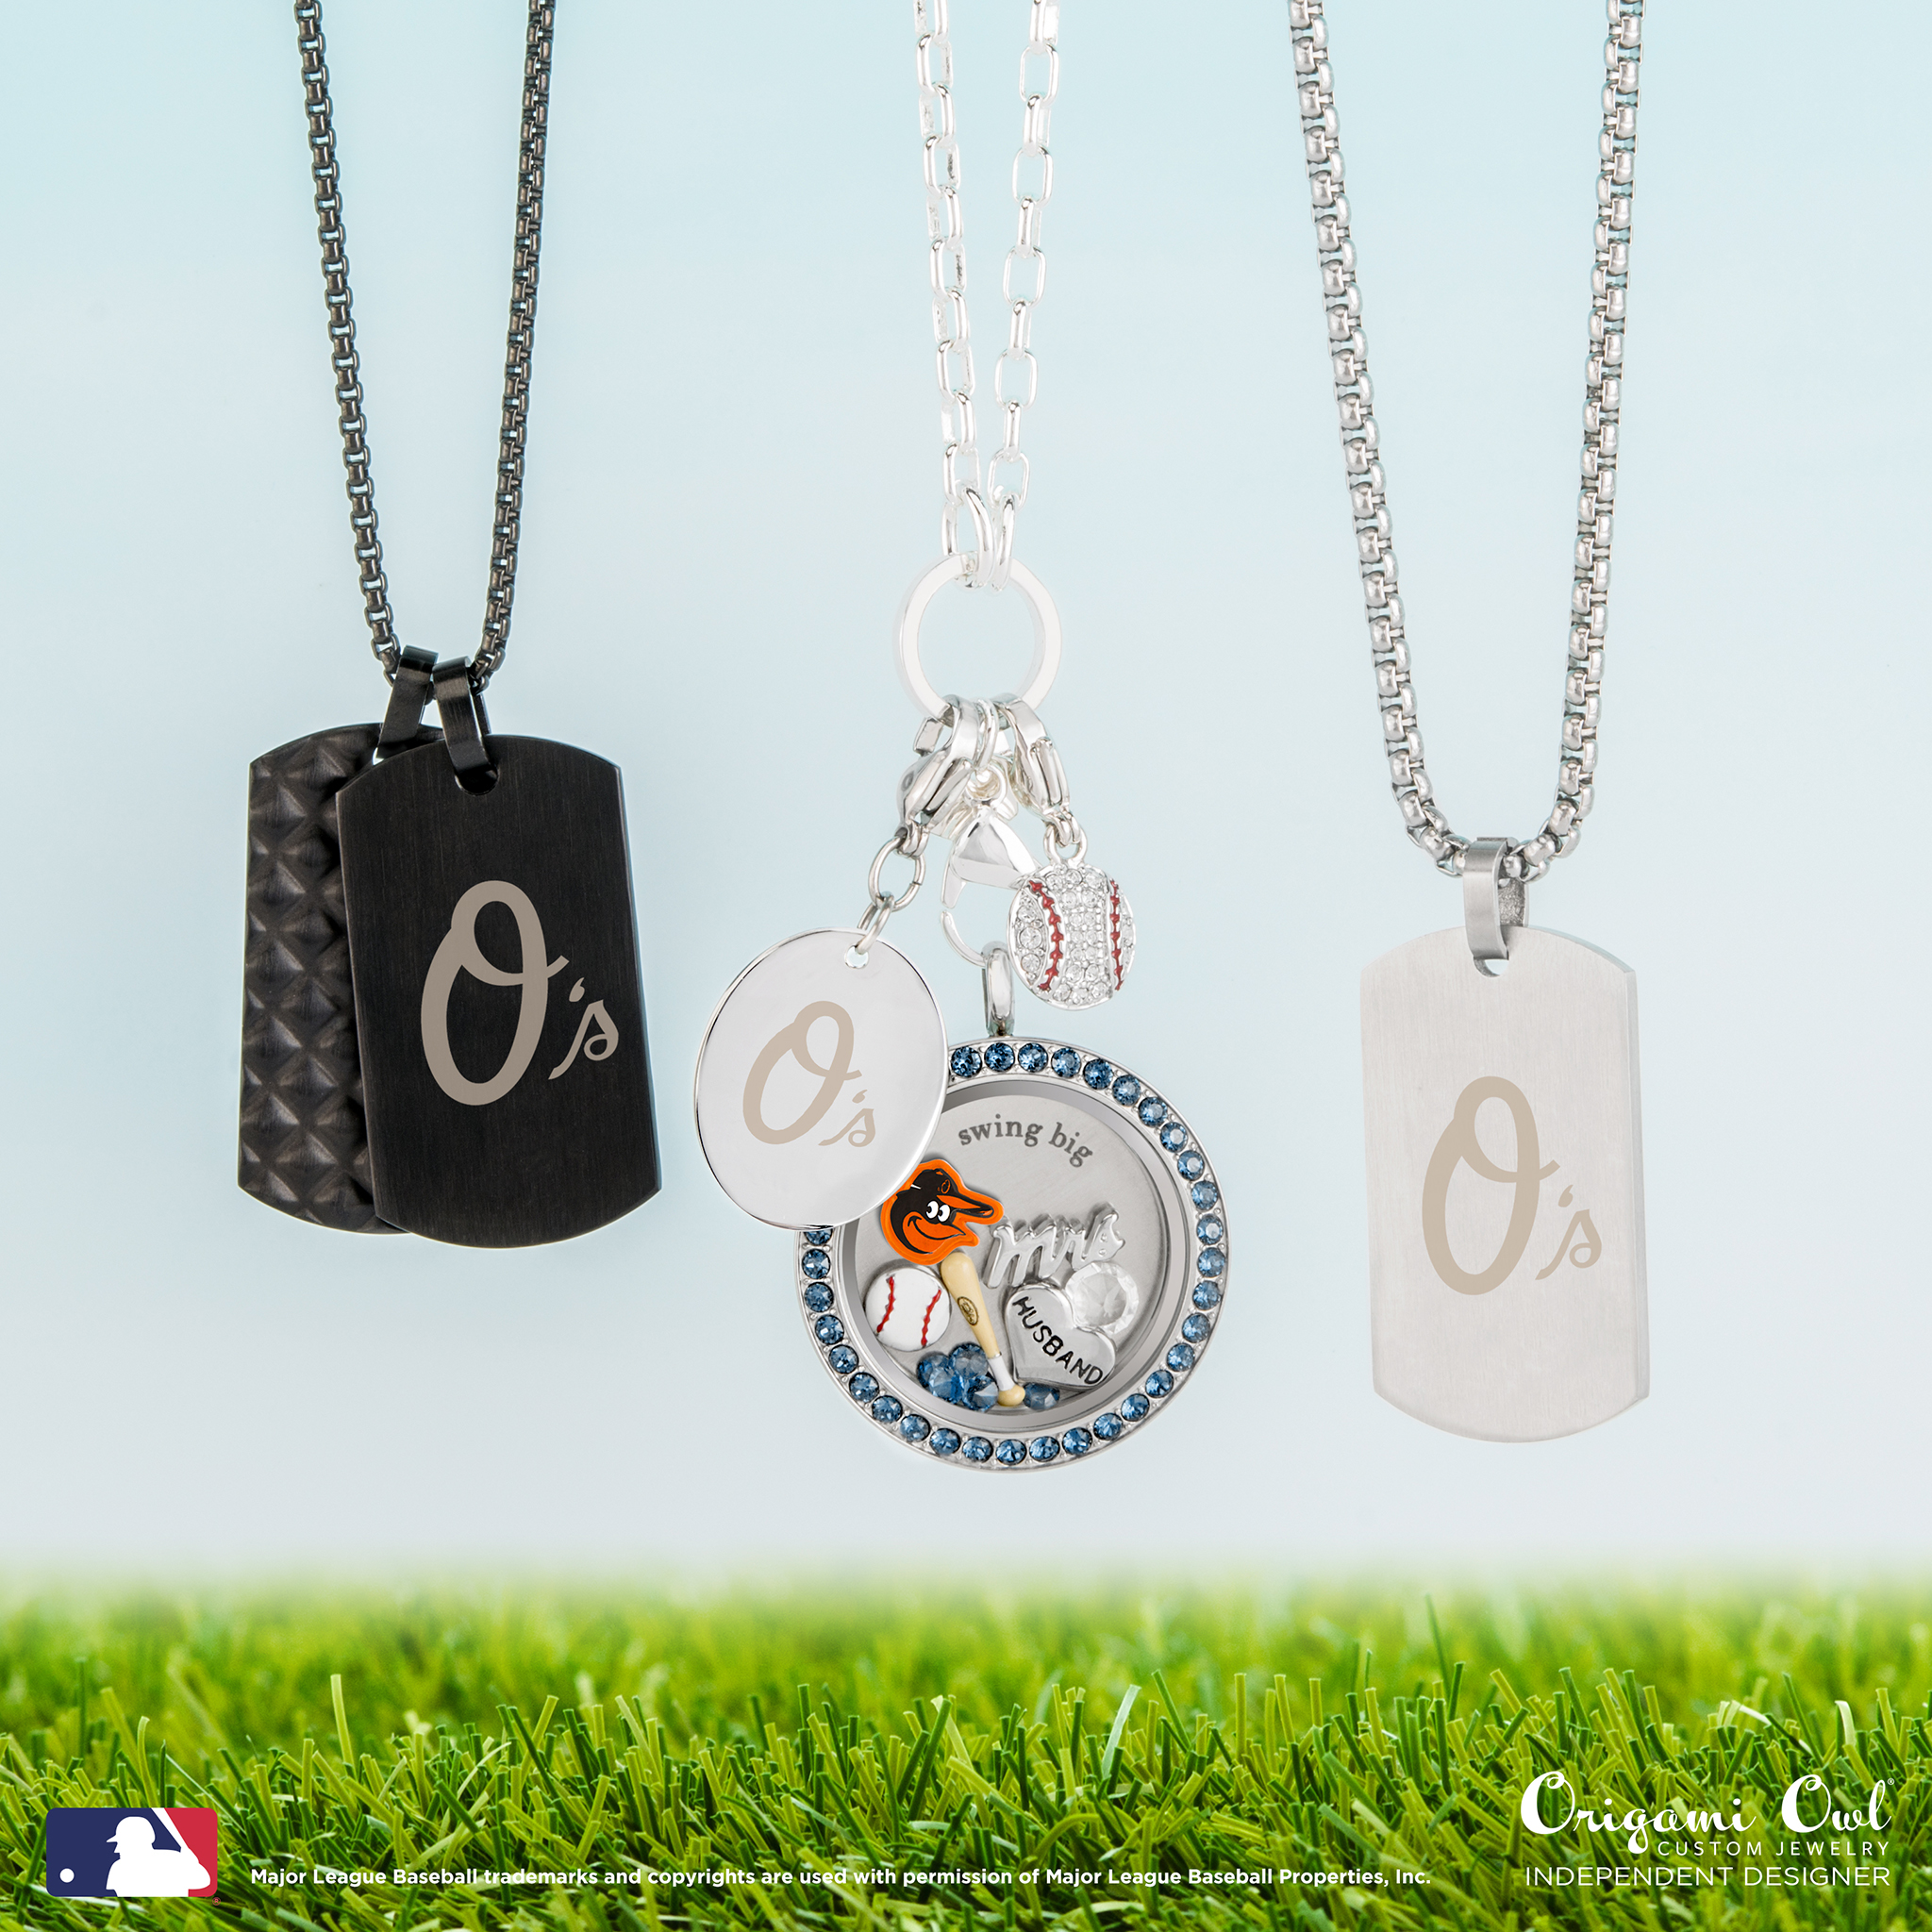 Best baseball jewelry to represent your favorite mlb team baltimore orioles jeuxipadfo Images